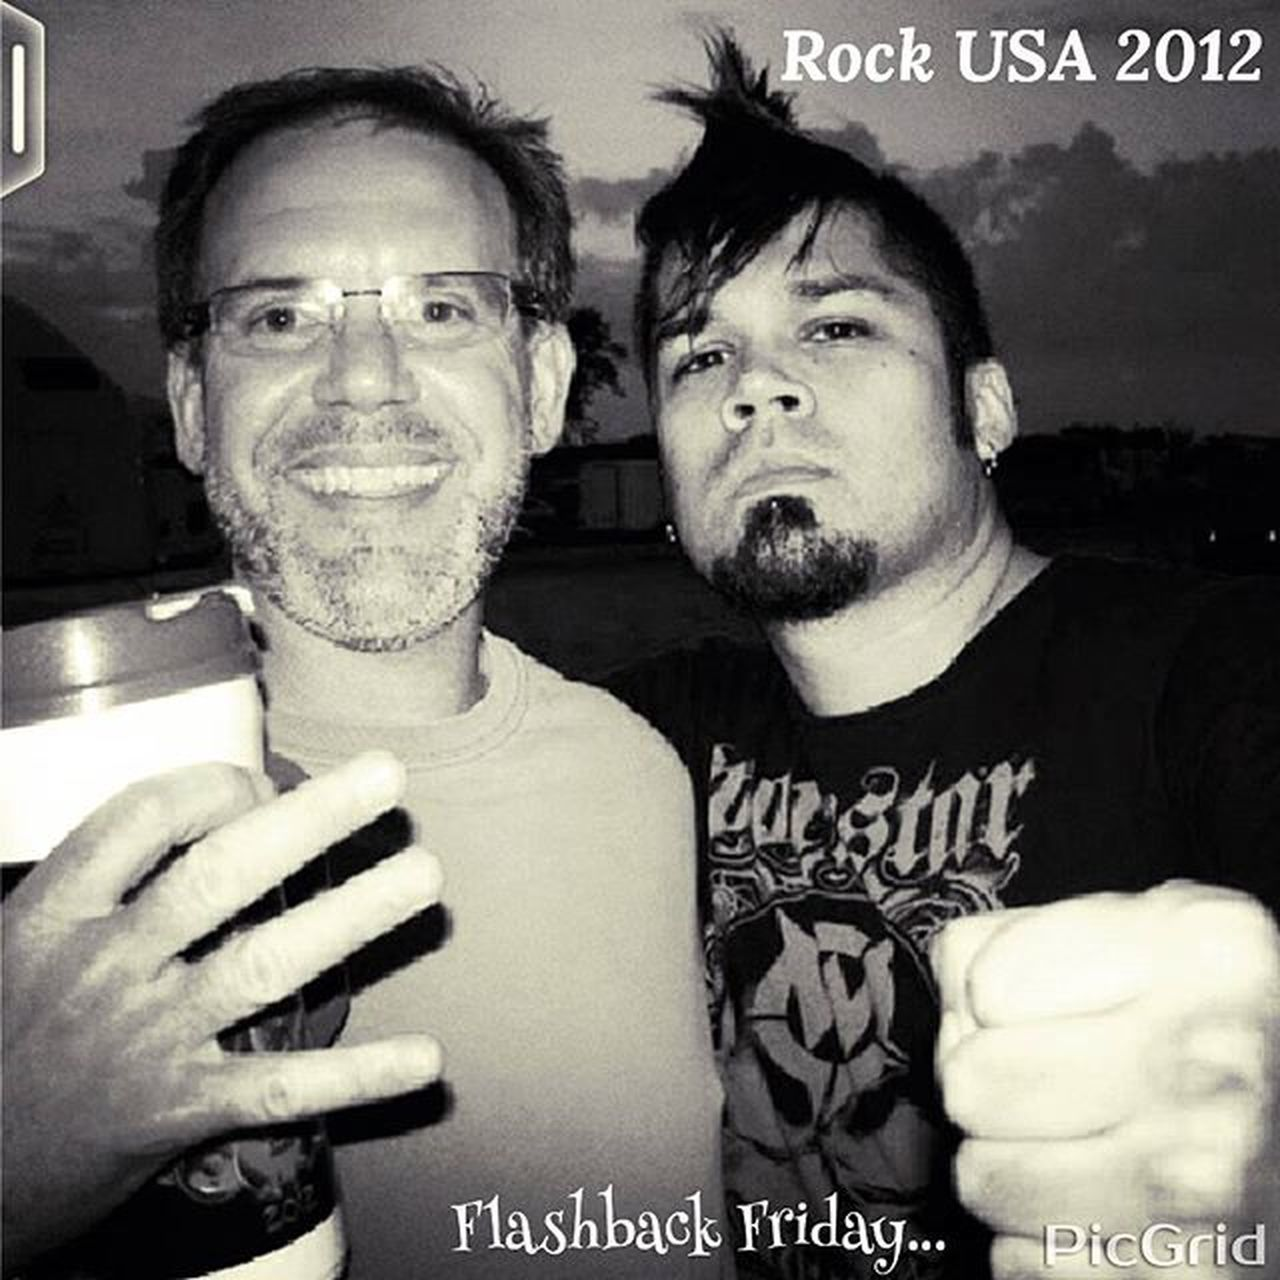 Flashbackfriday Rockusa 2012....with @Jasenmoreno lead singer of the band Drowningpool ...This is how the big dawggs run!!!?! ...12 more days till the insane rocknroll kicks offs again...4 days Vip...5th row from stage....not badd.... Whiskeymakesmefriskey Offthehook Maybushouldstayontheporch Everybodywantssome Jasenmoreno